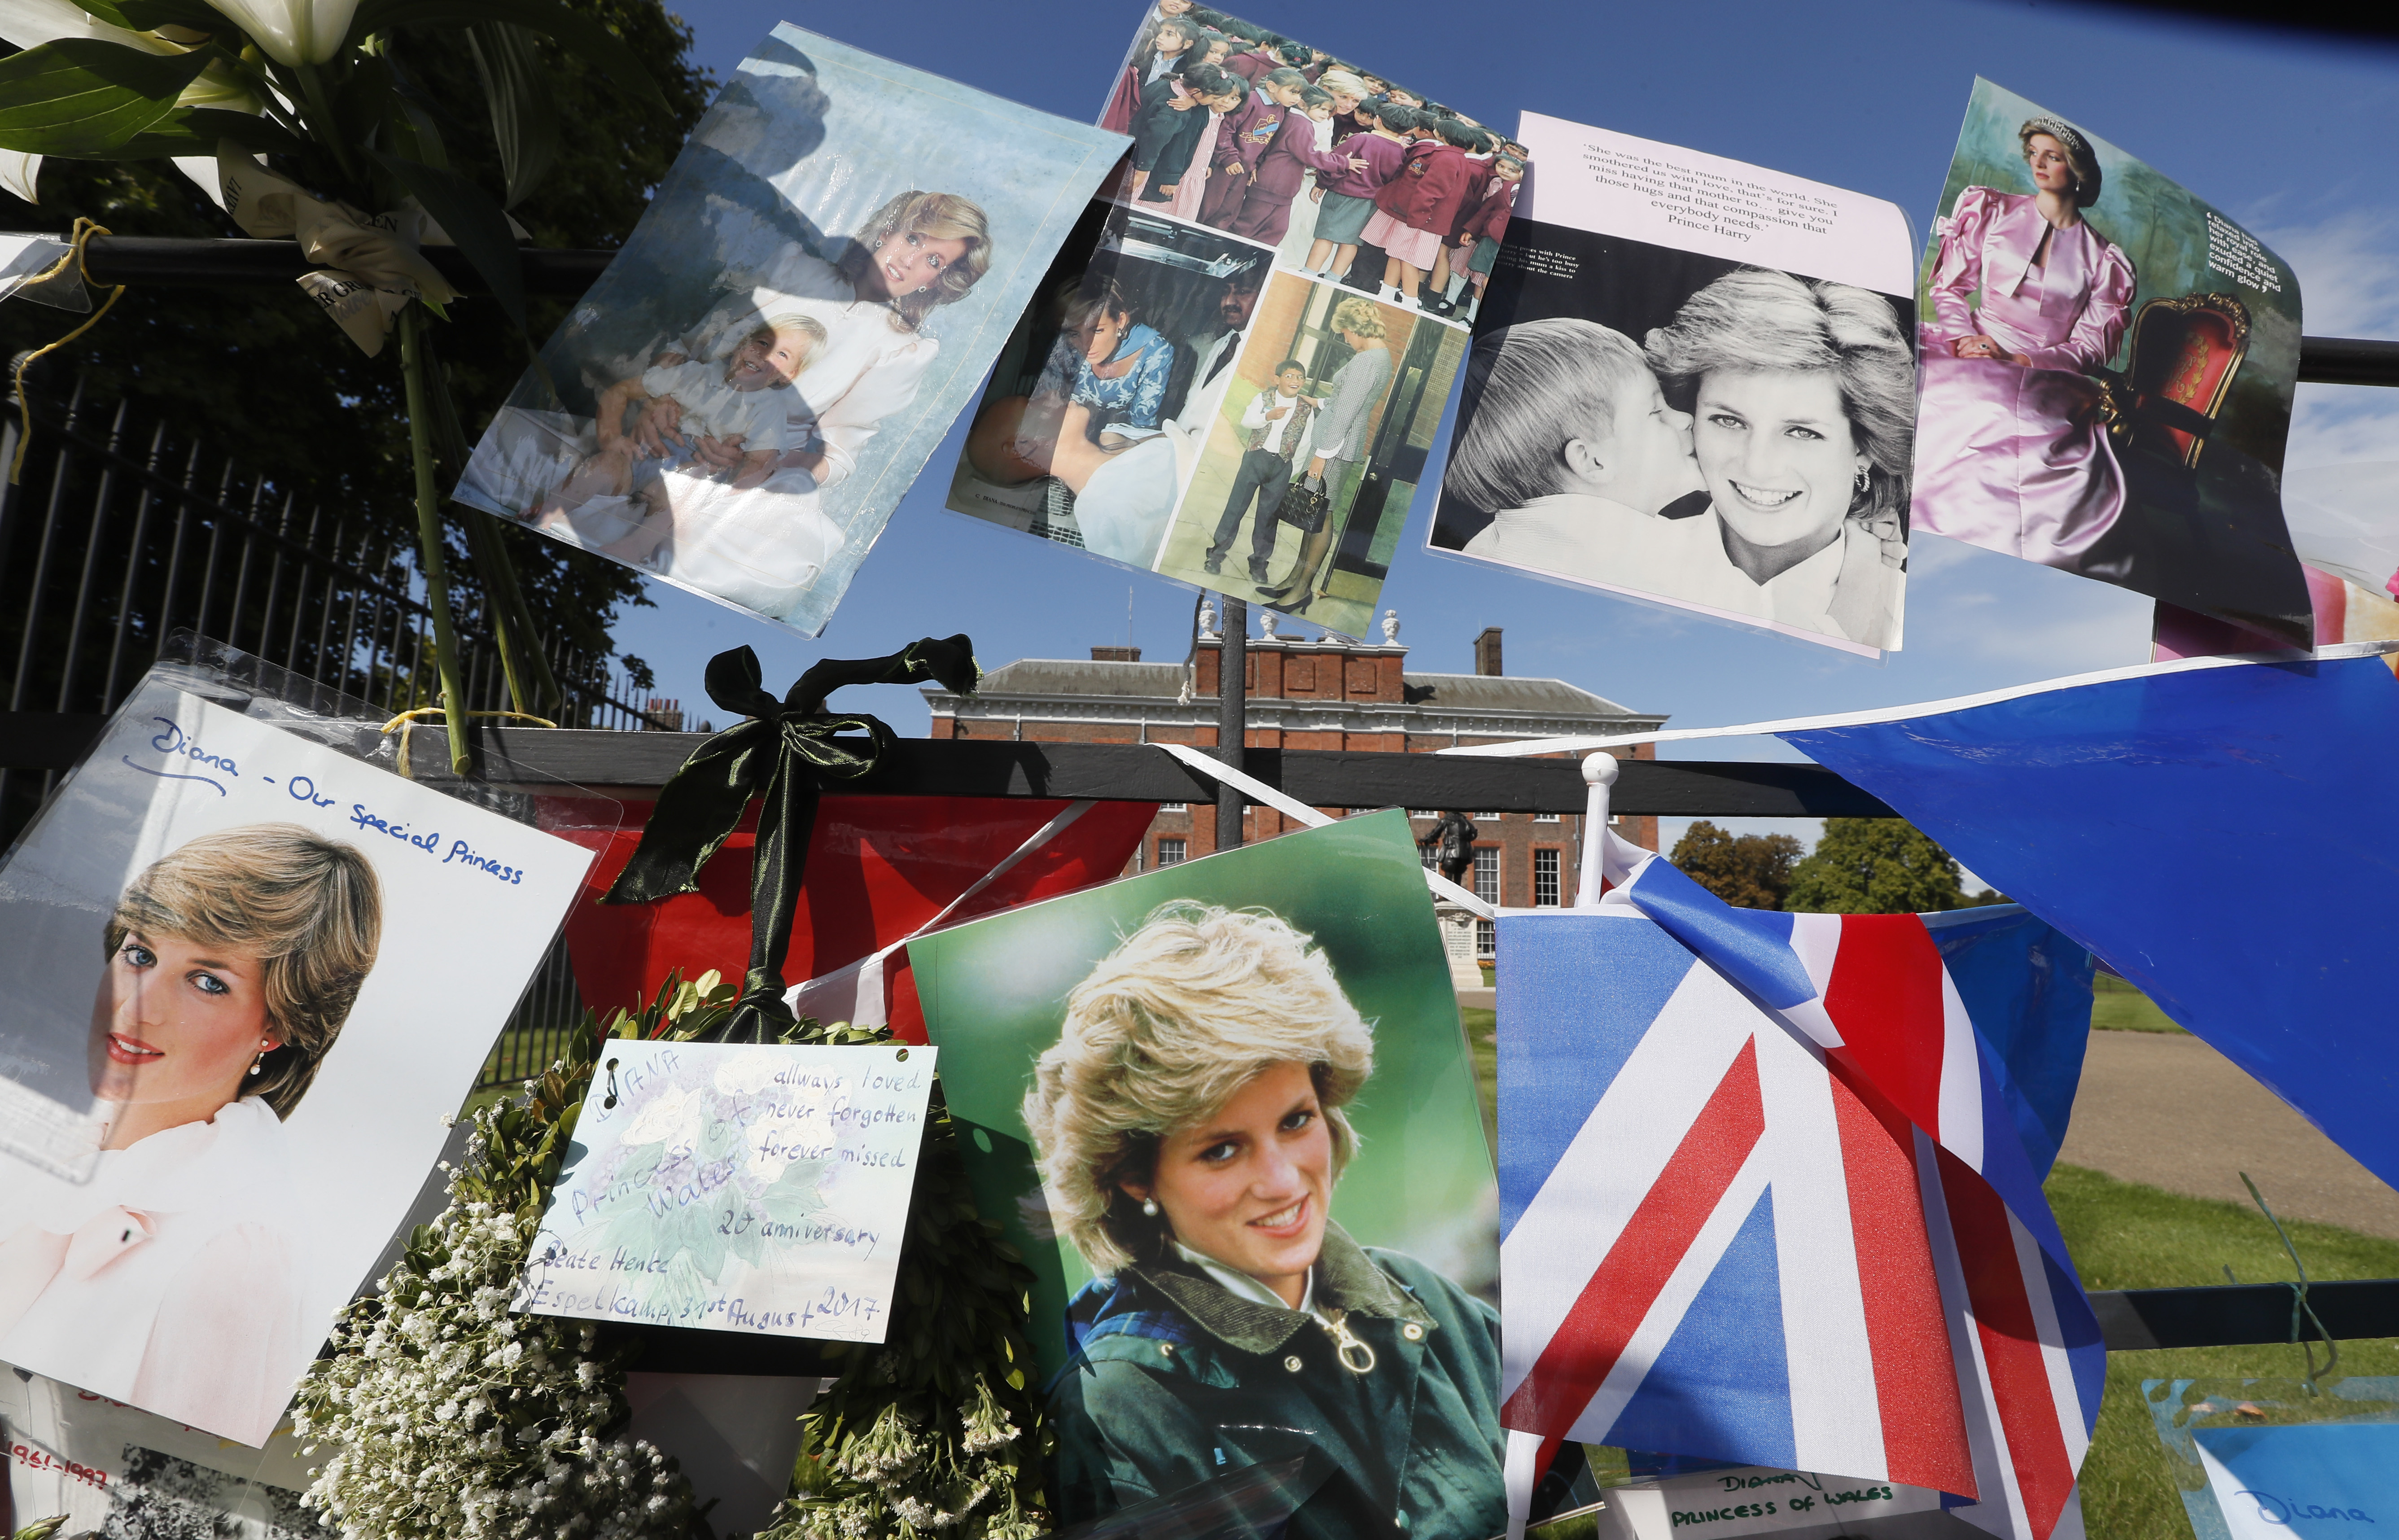 Pictures and flags hang on the gates of Kensington Palace in London to pay tribute to the late Diana, Princess of Wales, Thursday, Aug. 31, 2017. Tributes at the gates are to mark the 20th anniversary of Diana's death, in a car crash in Paris on Aug. 31, 1997.